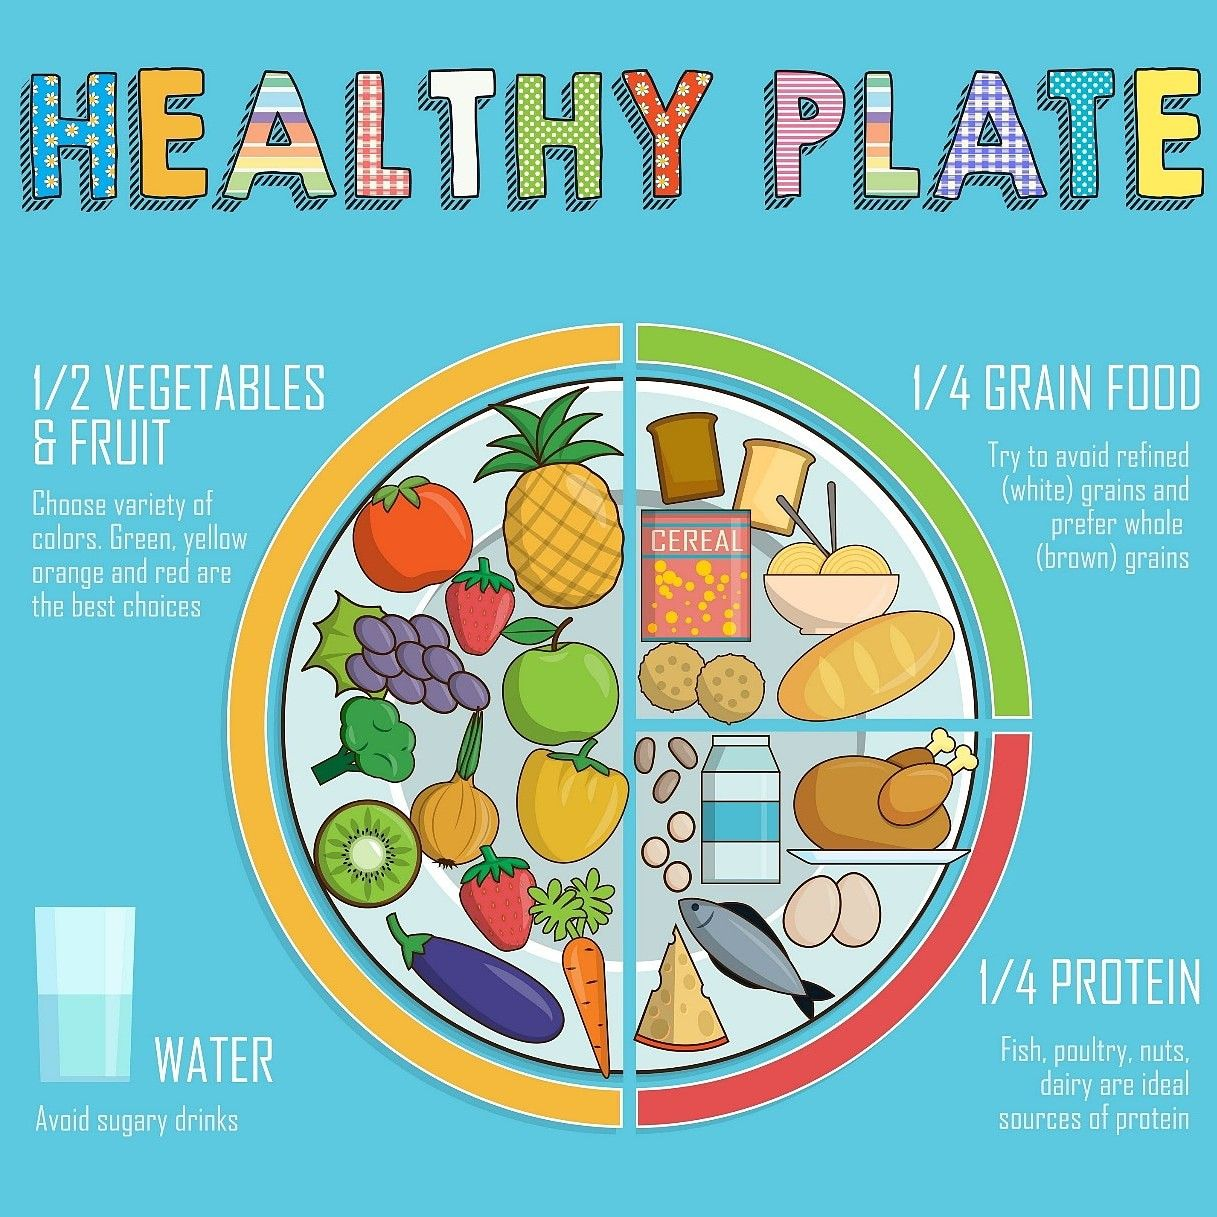 Choose Your Plate Wisely The Main Message Of The Healthy